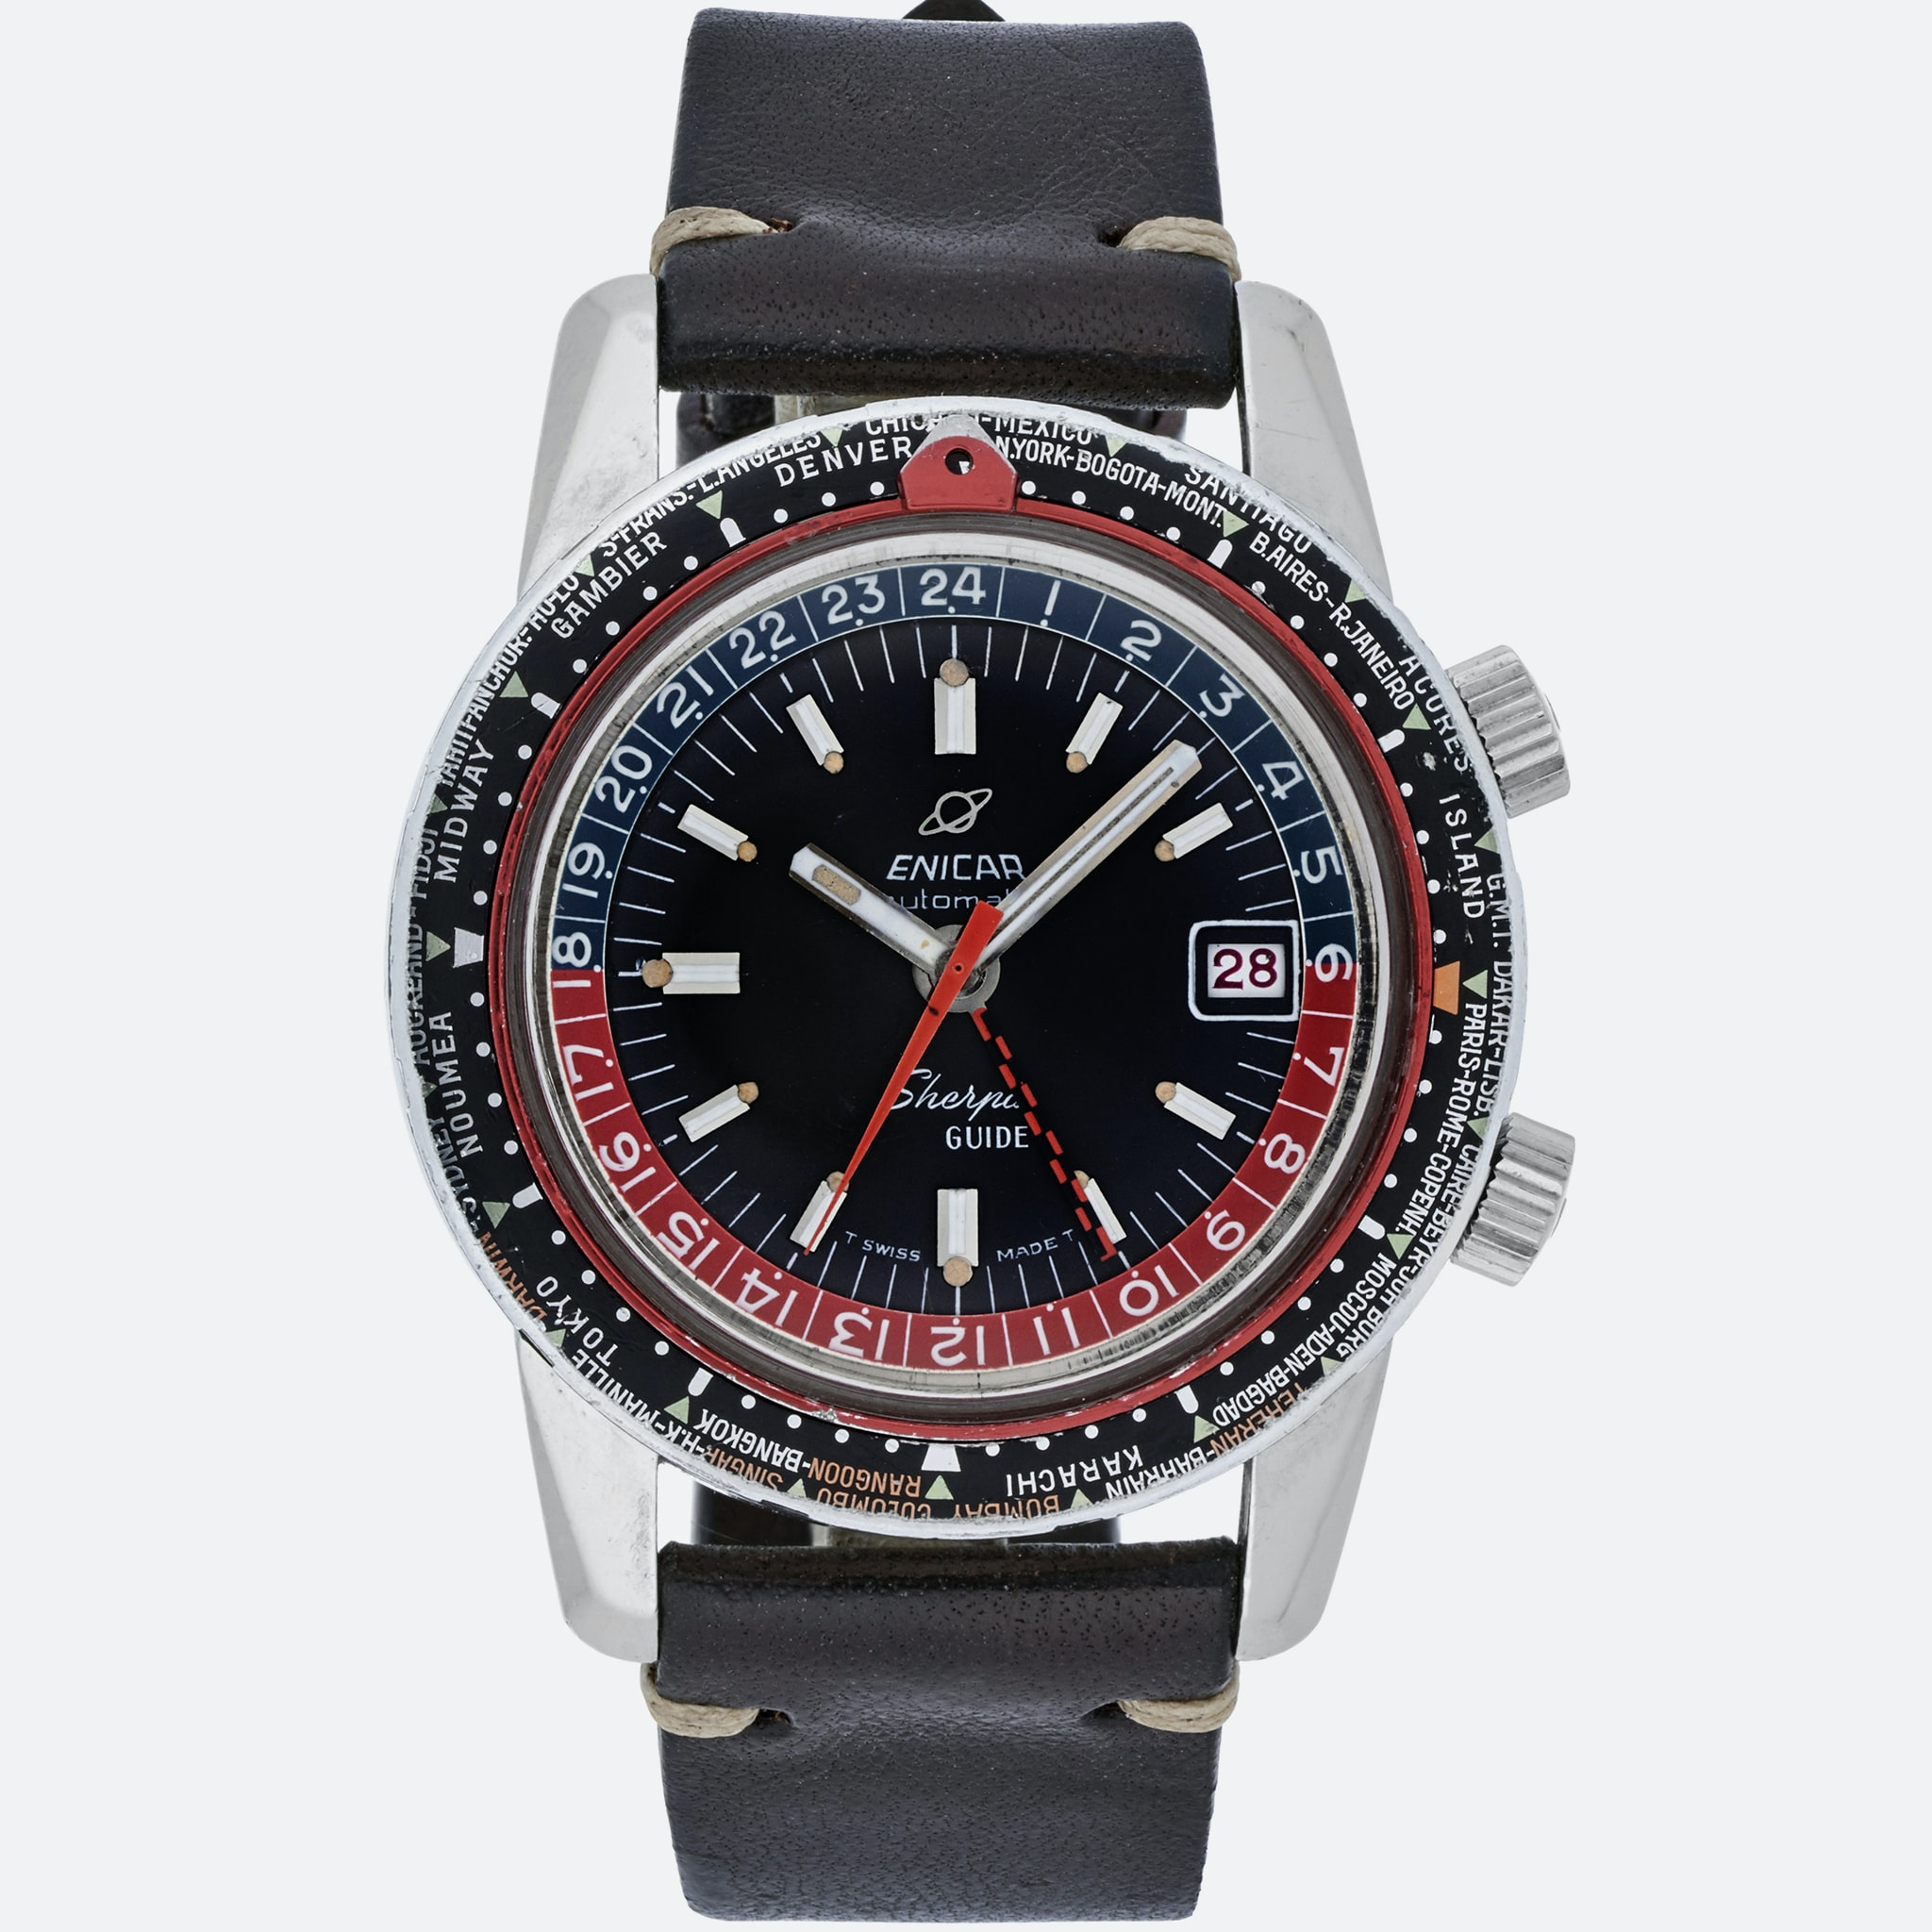 In The Shop: A 1940s Breitling Chronomat Reference 769, A 1960s Cornavin Diver, And A 1972 Rolex Daytona Reference 6263 In The Shop: A 1940s Breitling Chronomat Reference 769, A 1960s Cornavin Diver, And A 1972 Rolex Daytona Reference 6263 492 EnicarSherpaGuide A